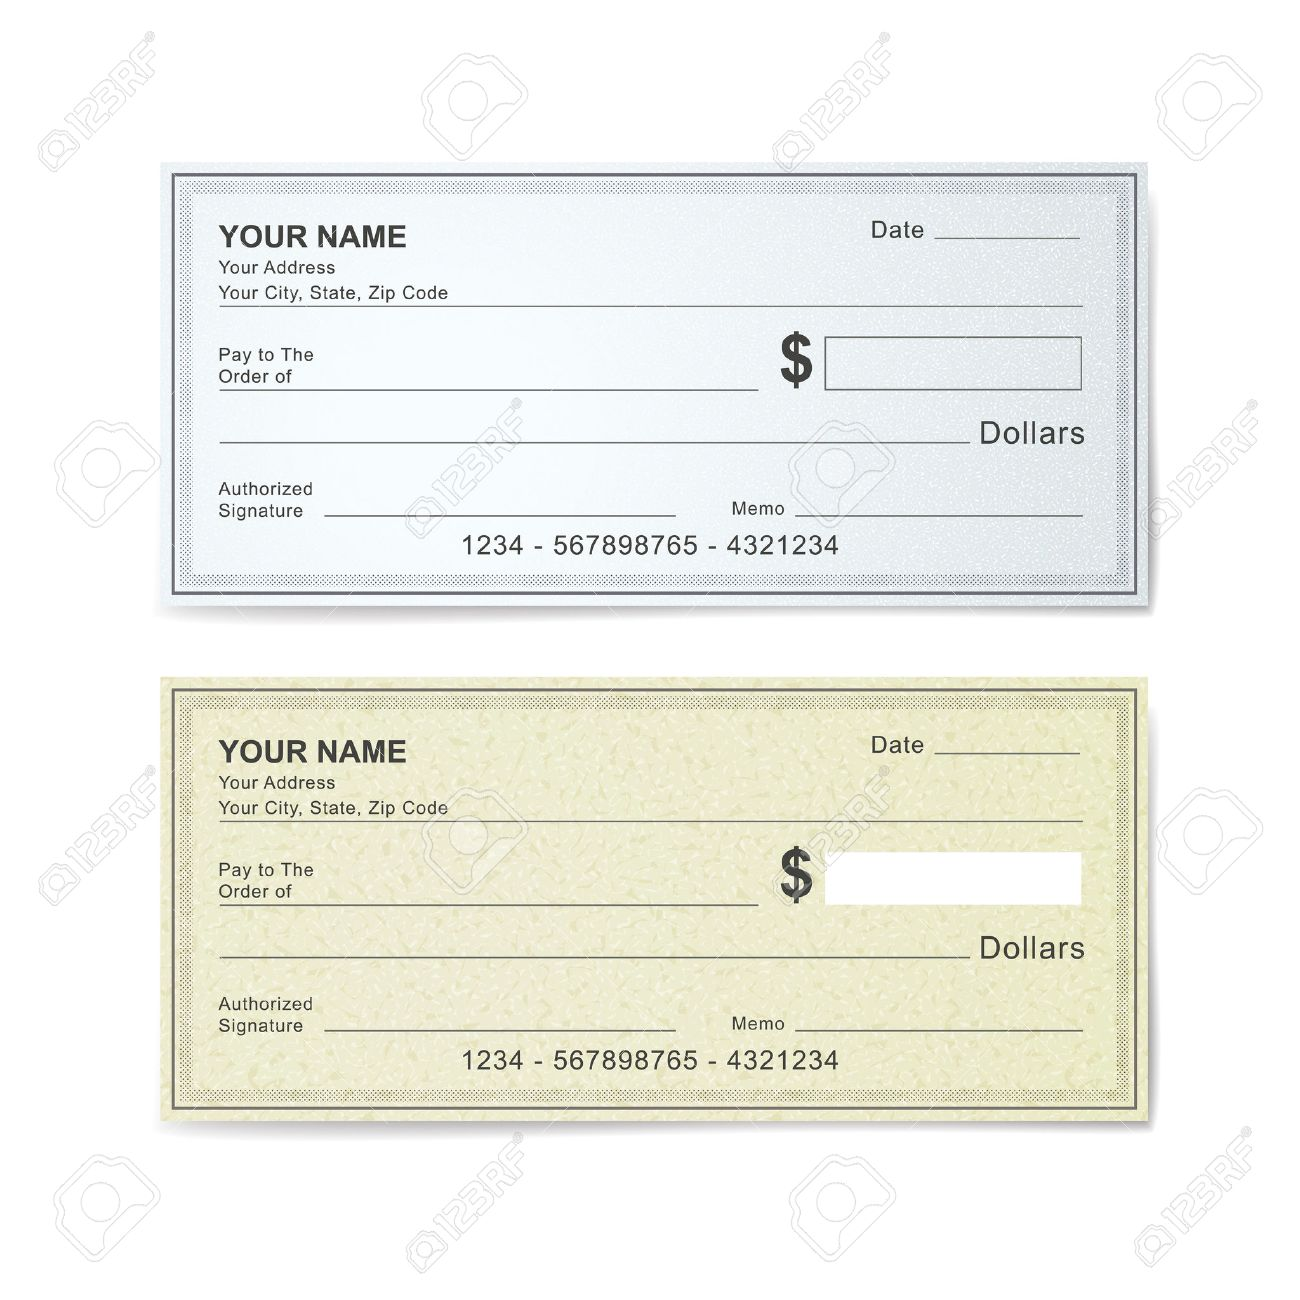 Blank bank check template isolated on white royalty free cliparts blank bank check template isolated on white stock vector 31763552 pronofoot35fo Image collections